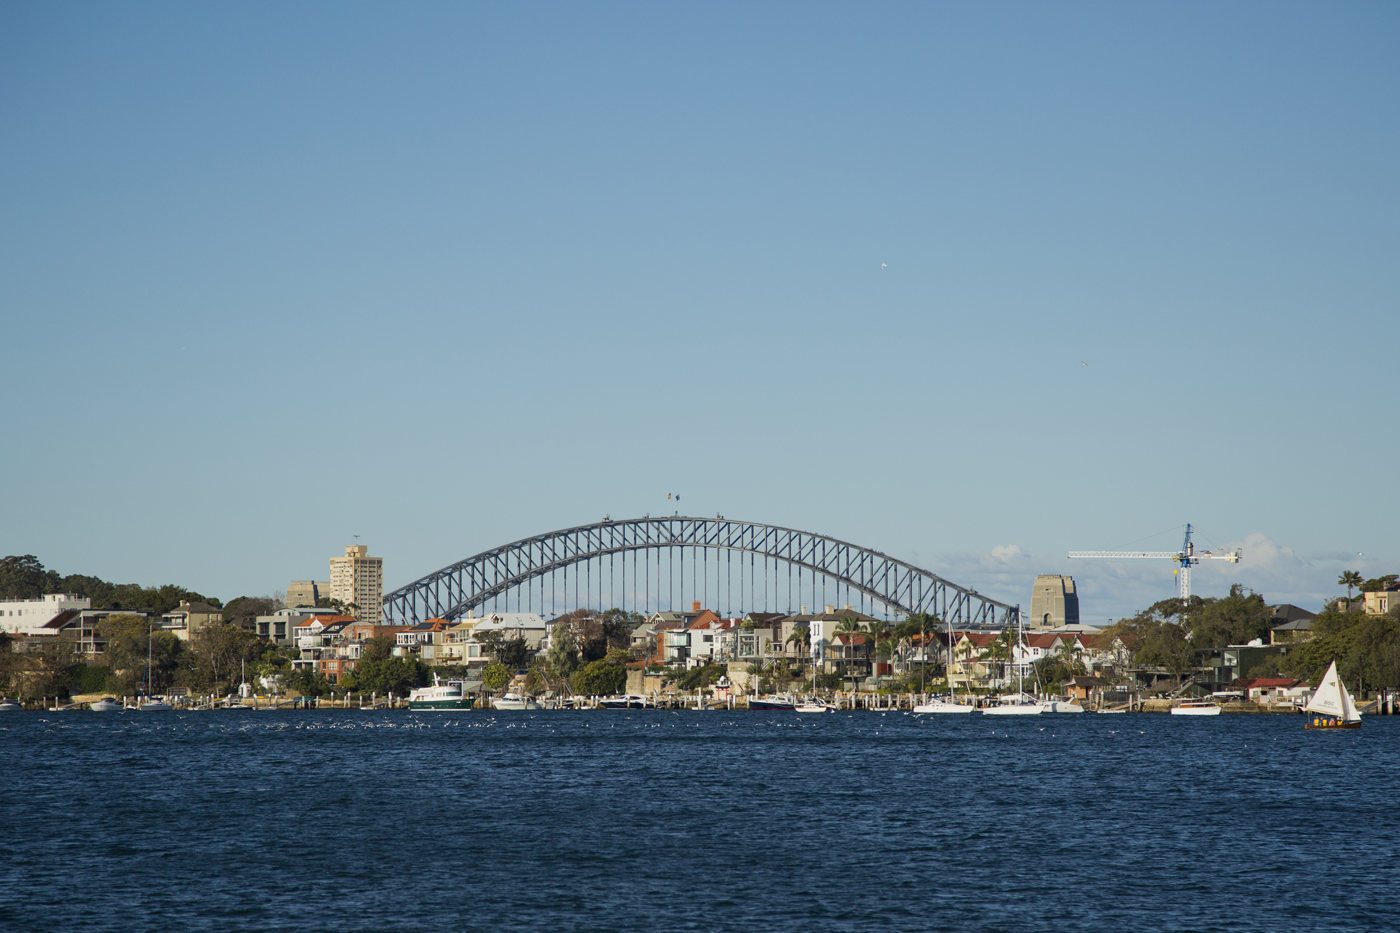 View of the Harbour Bridge from Cockatoo Island